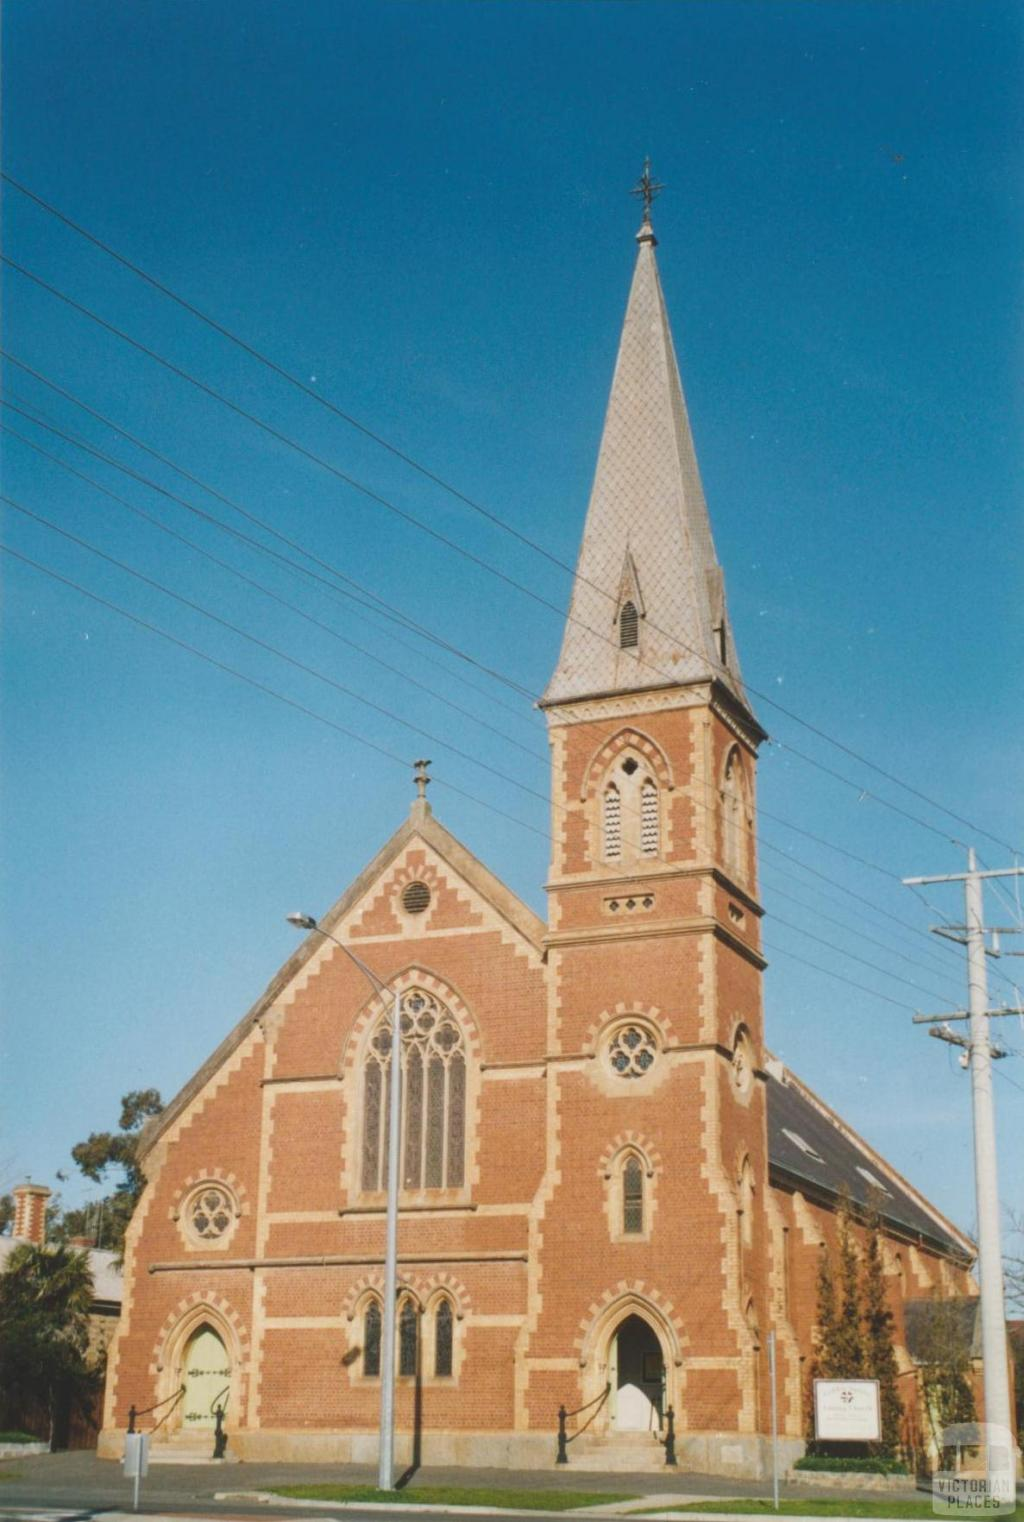 Golden Square Uniting Church, Panton Street, 2007